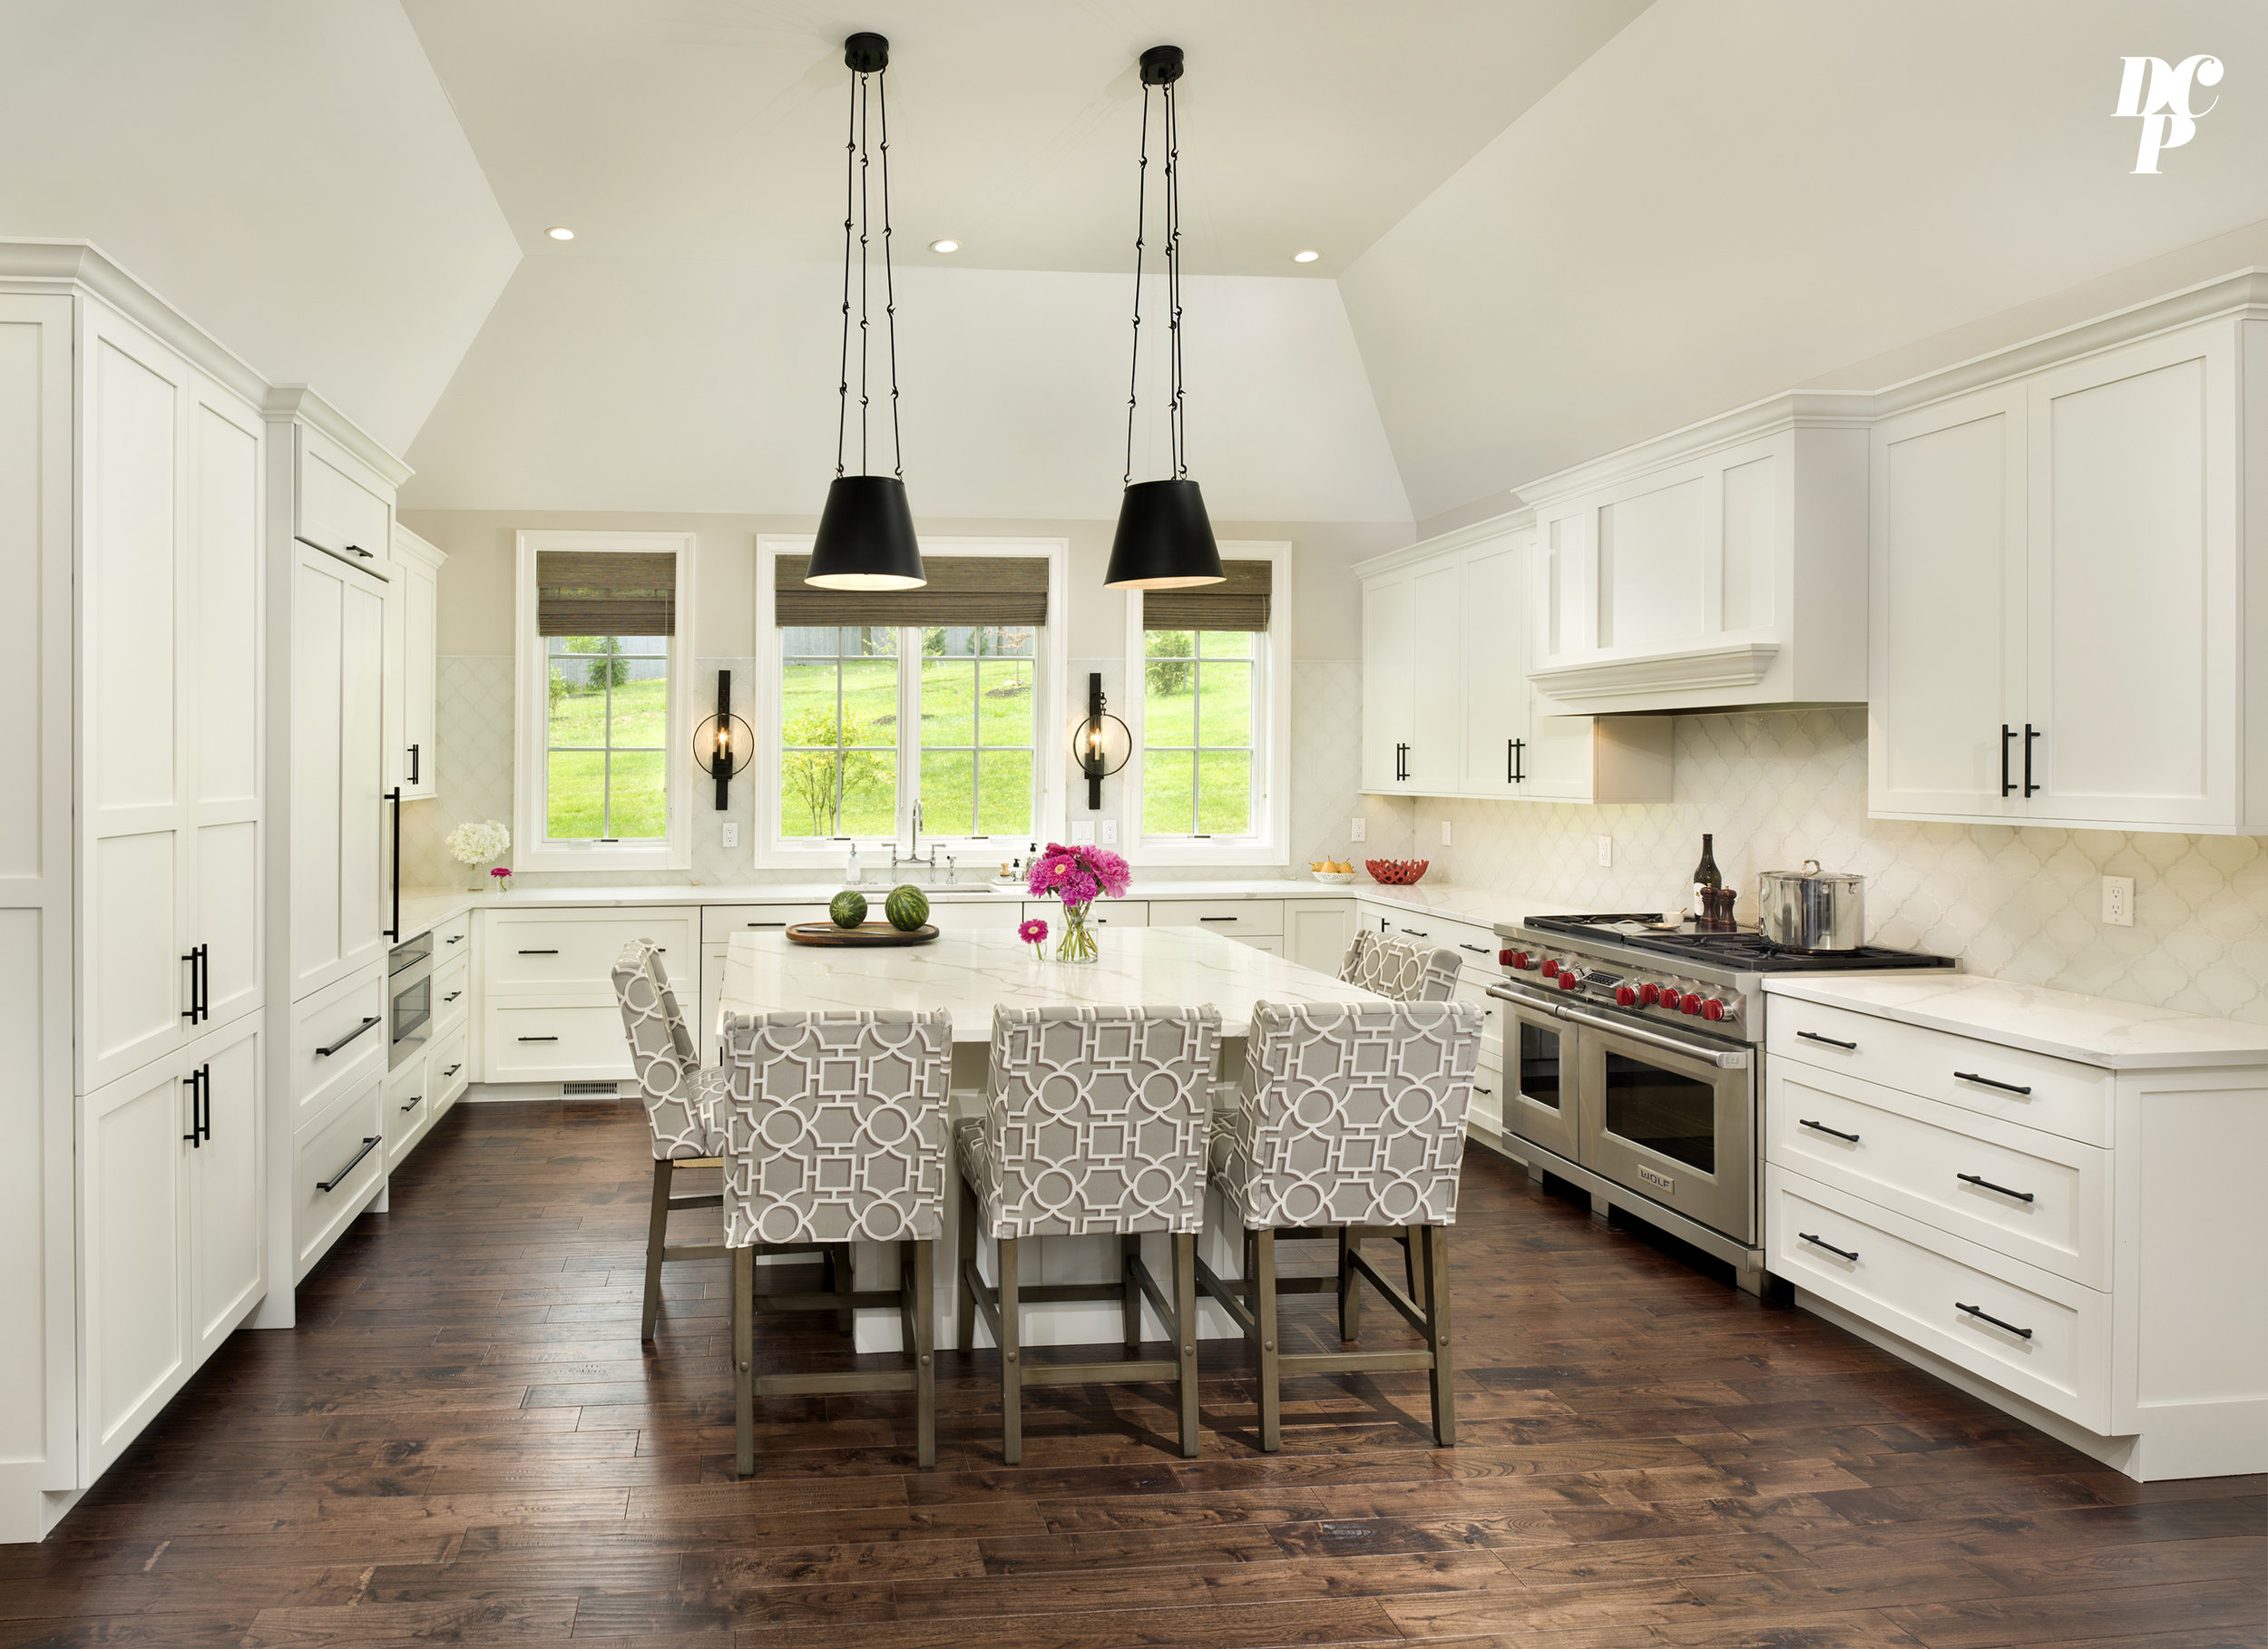 One of many kitchen shots from last week.  Waterbury Design